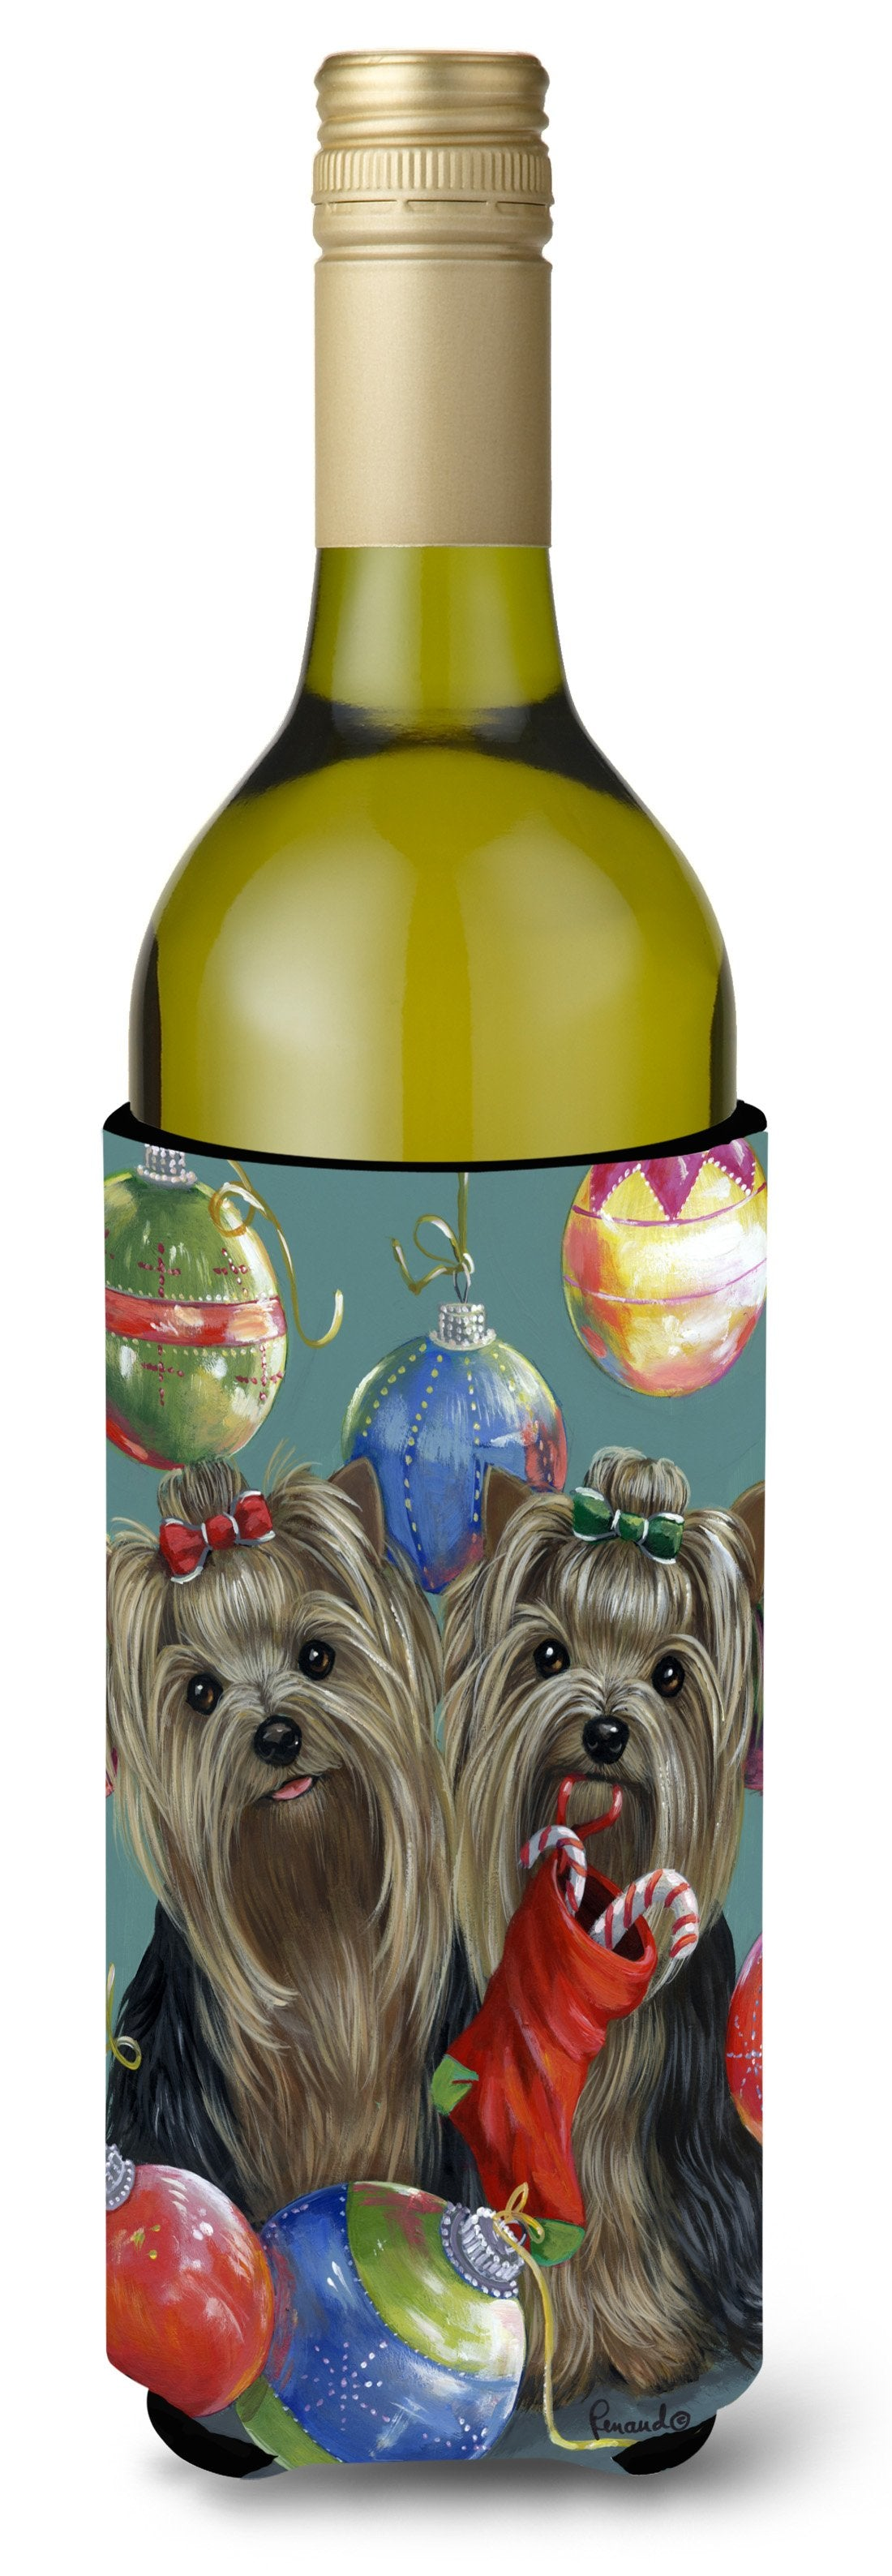 Yorkie Christmas All that Glitters Wine Bottle Hugger PPP3239LITERK by Caroline's Treasures